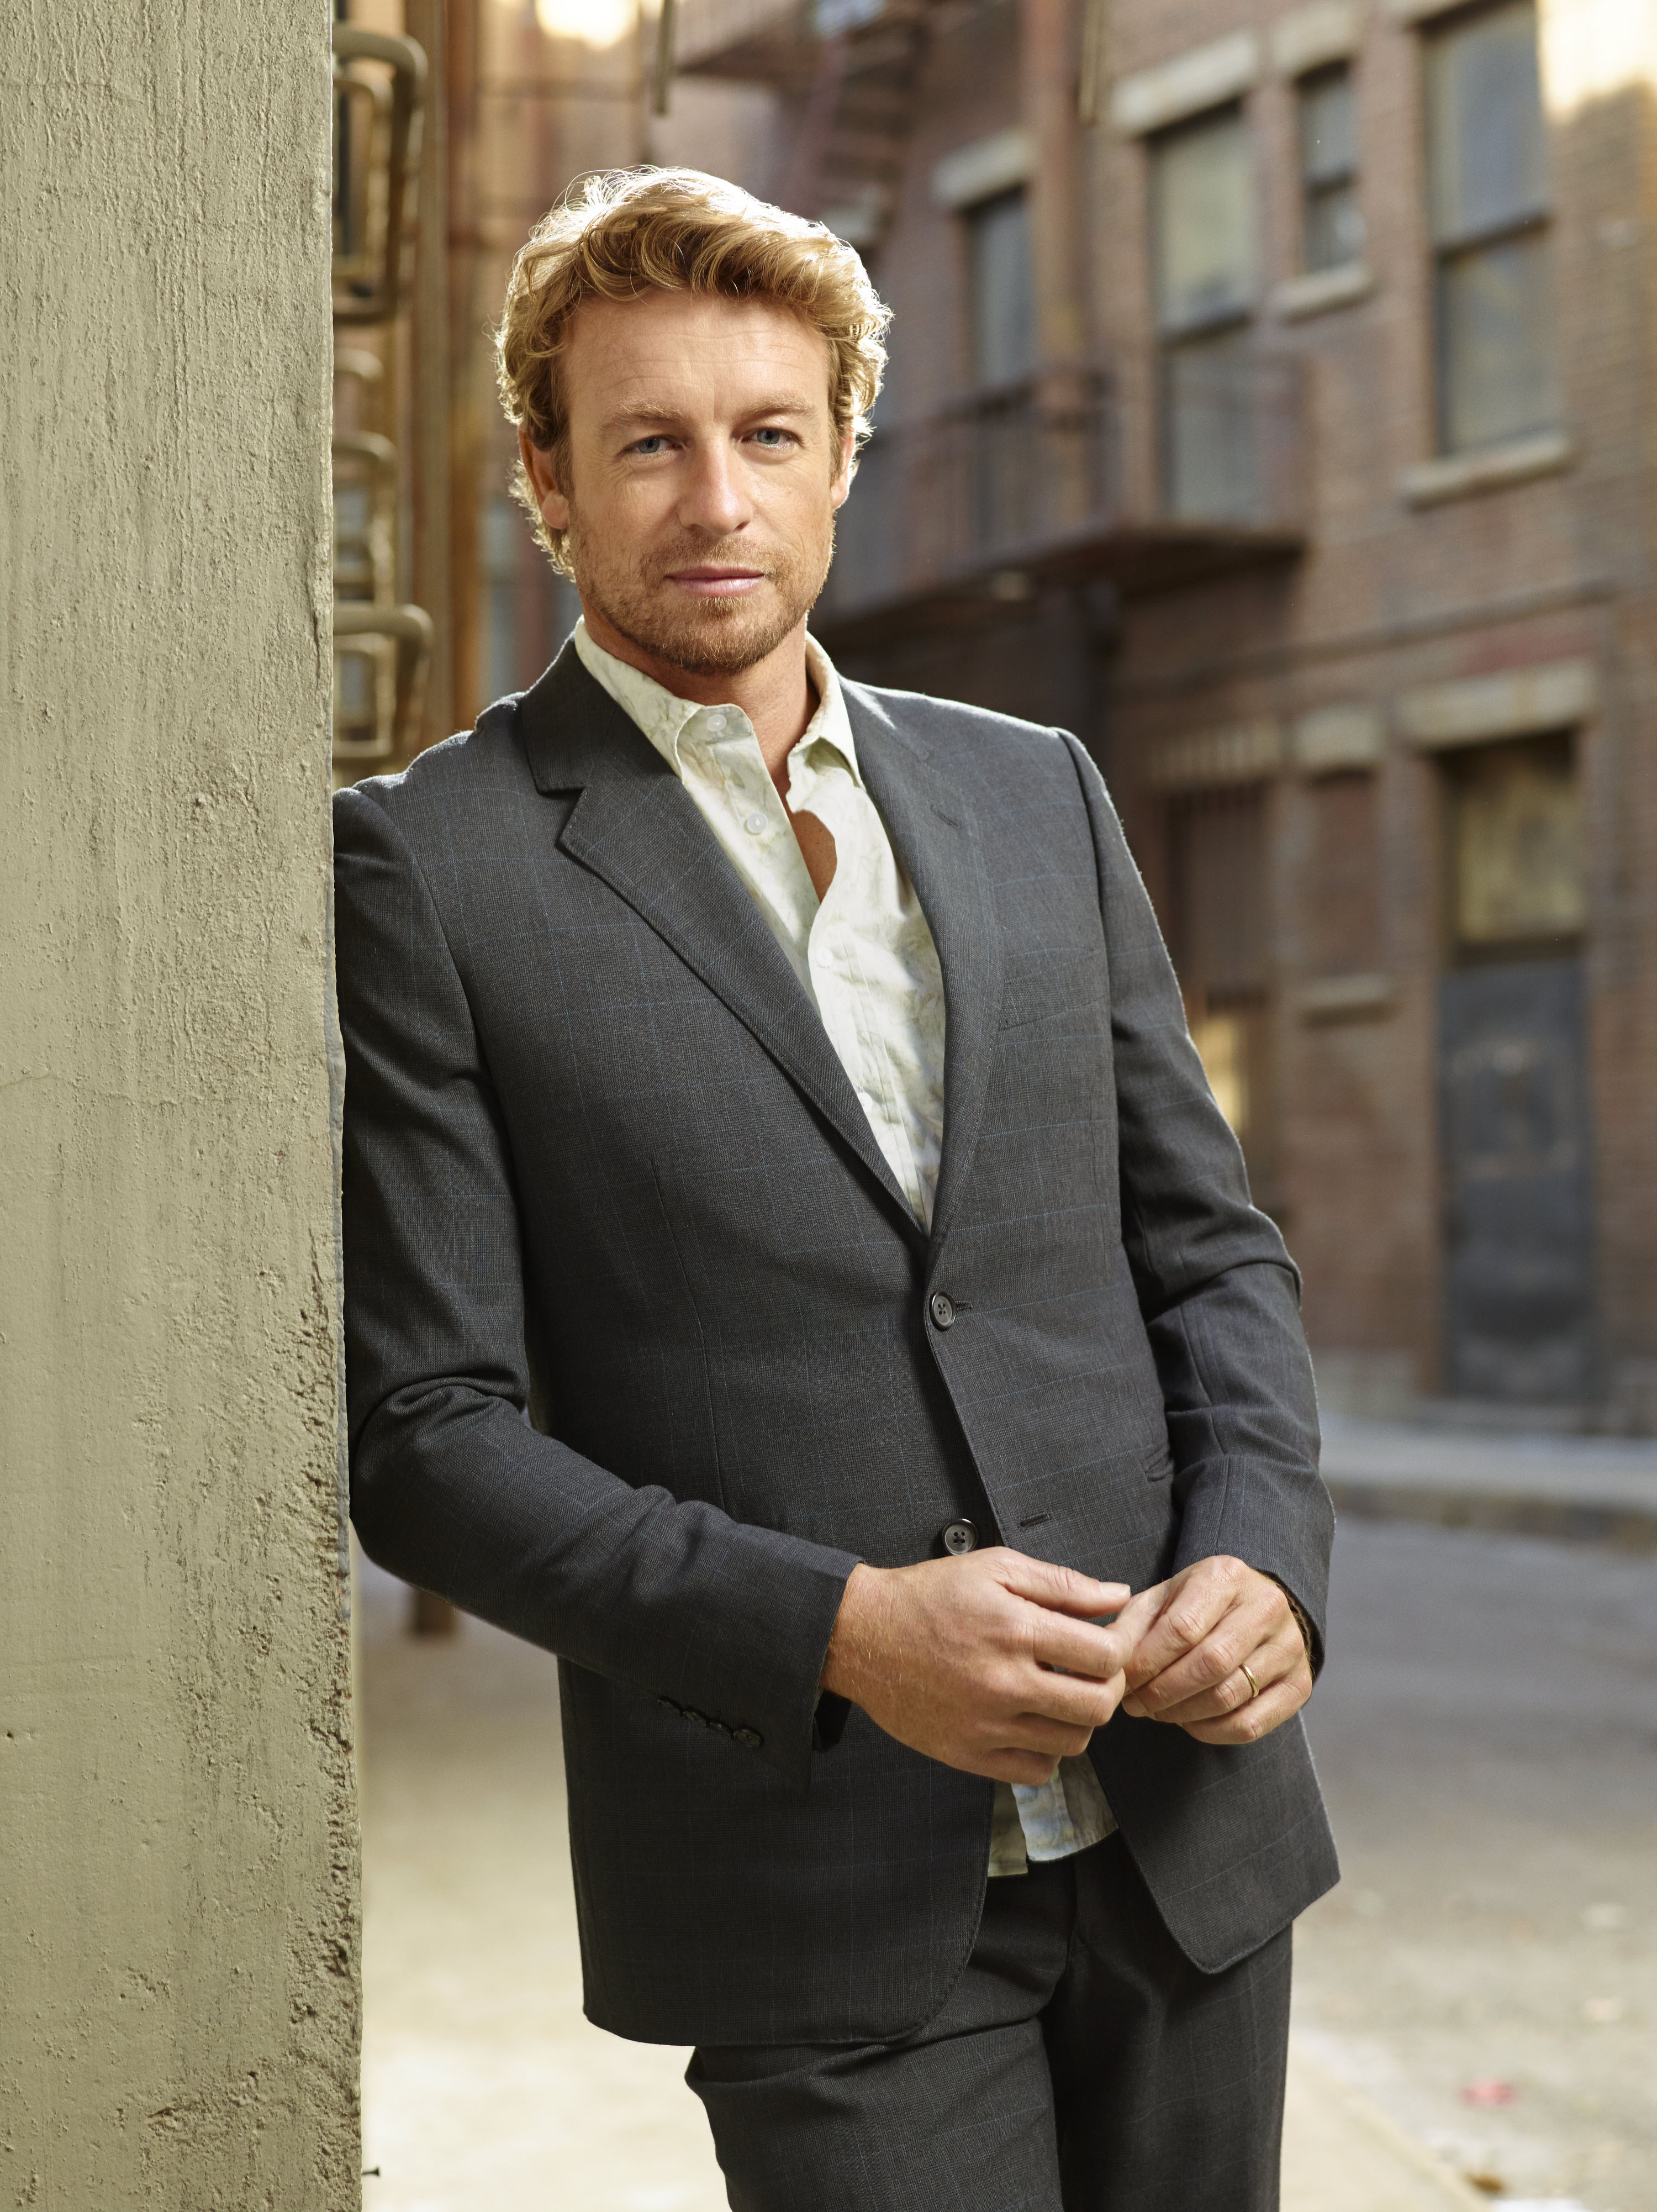 The mentalist season 6 fire and brimstone online dating